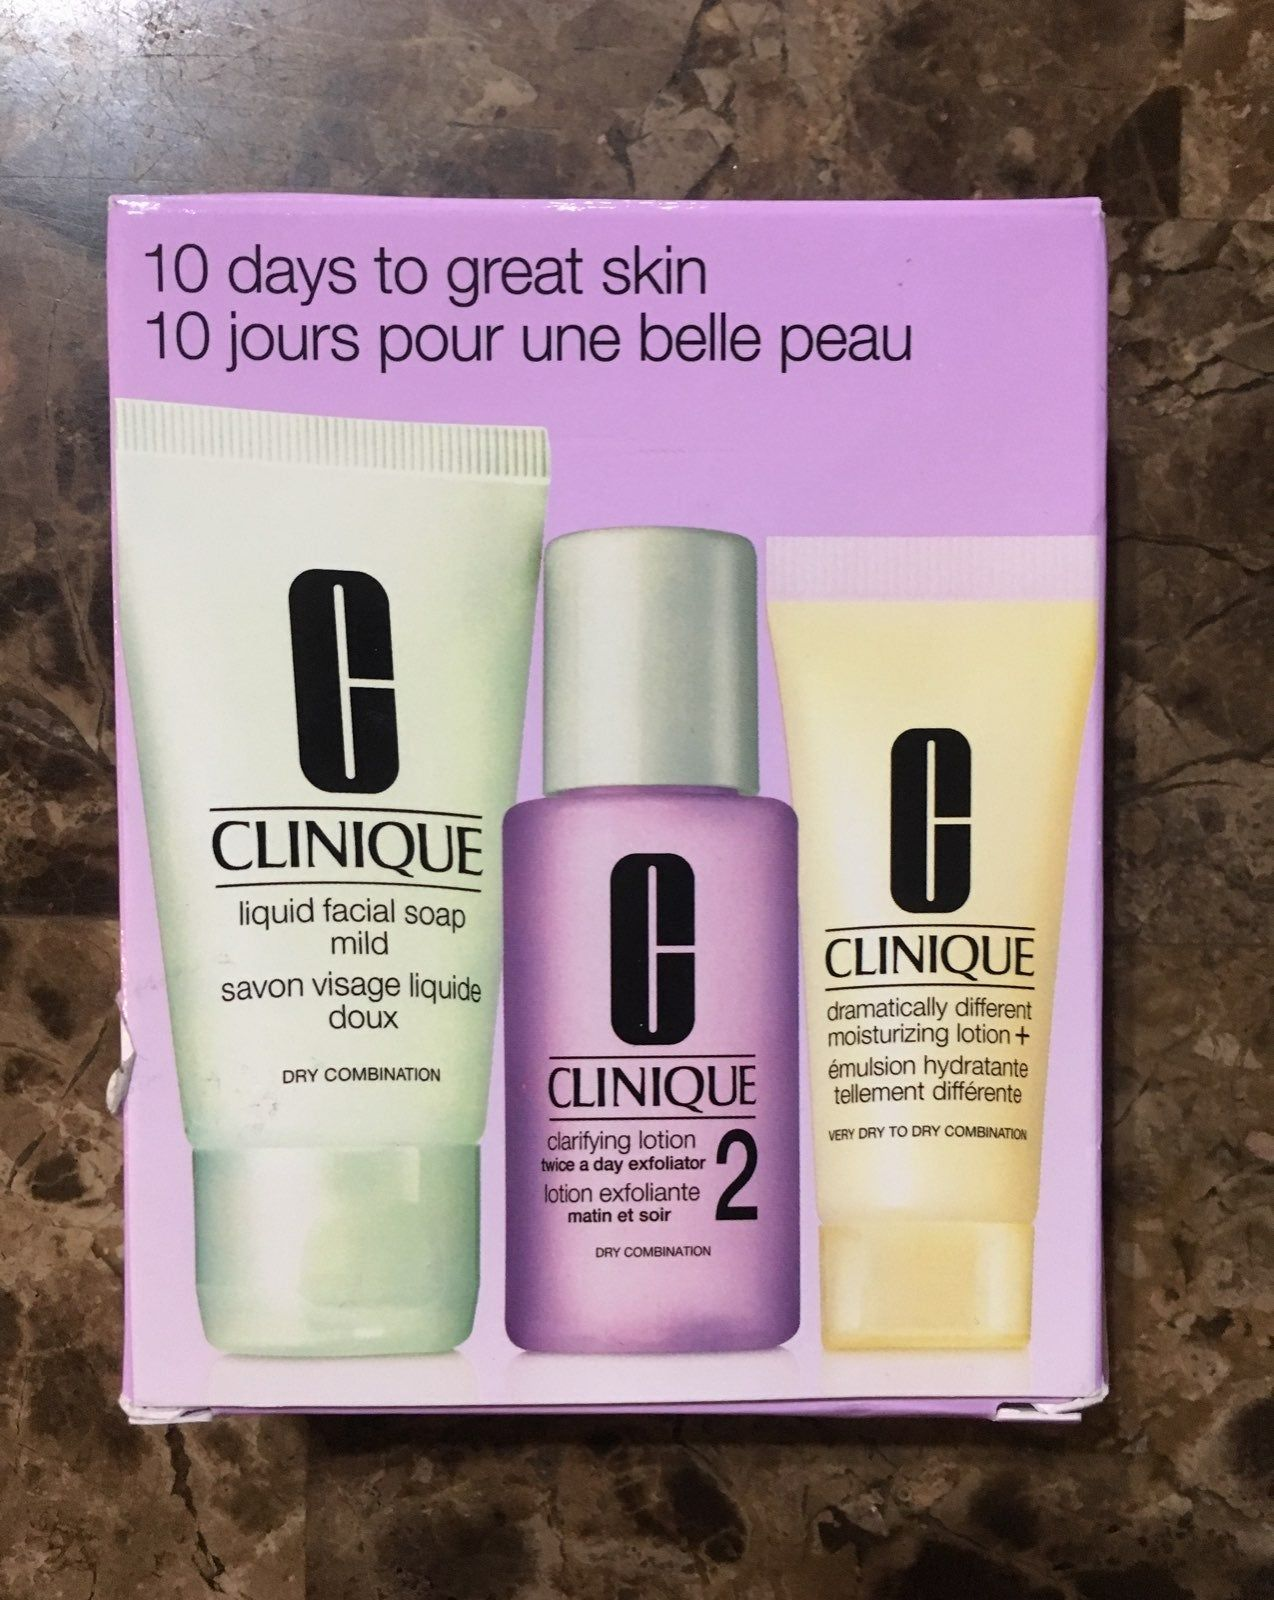 Clinique 3 Step Skin Care System 10 Days To Great Skin Skin Care System Clinique Skin Care